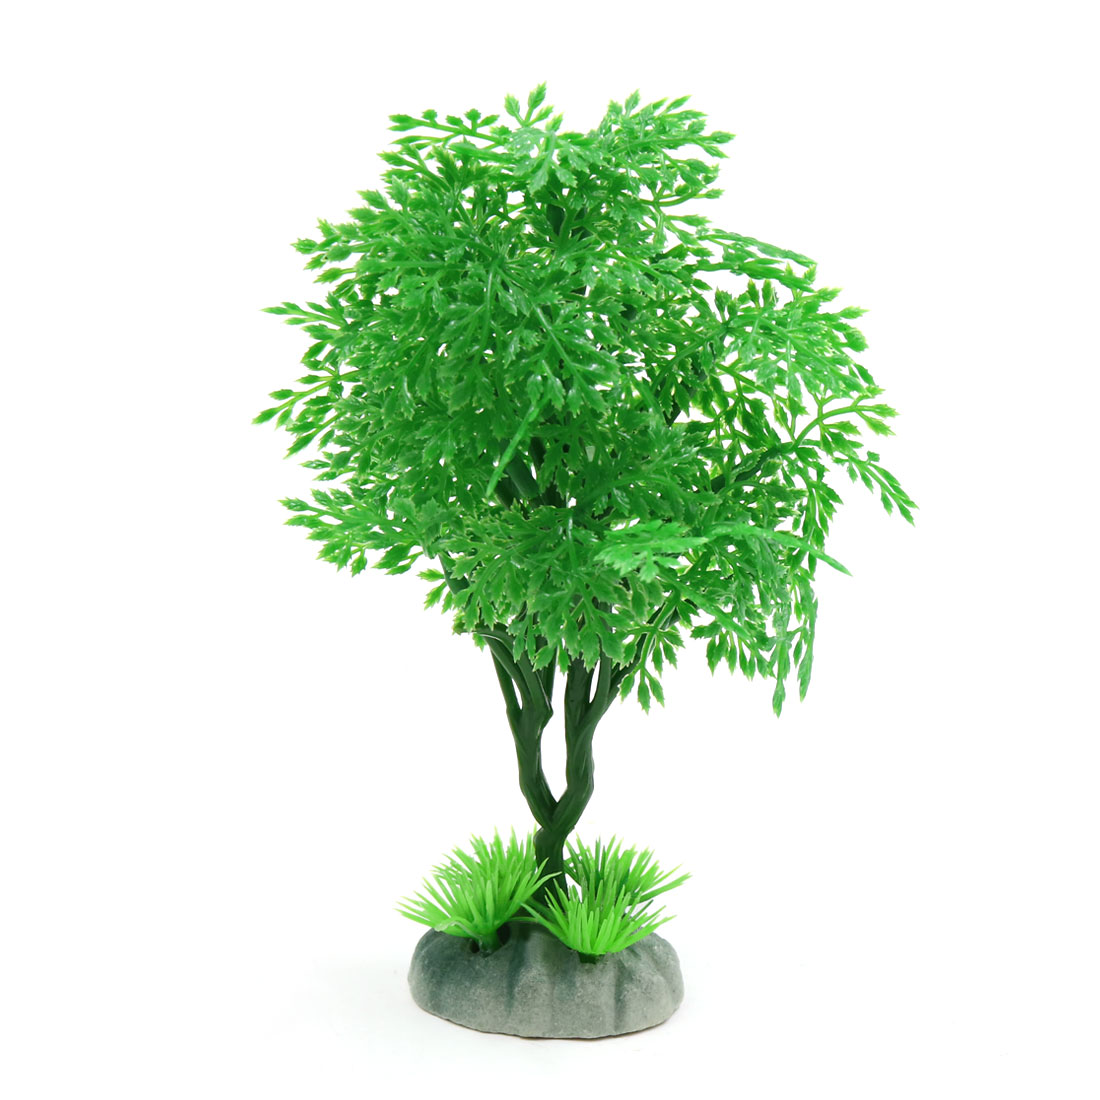 Green Plastic Tree Aquarium Fish Tank Waterscape Ornament Home Decor 6.1inch